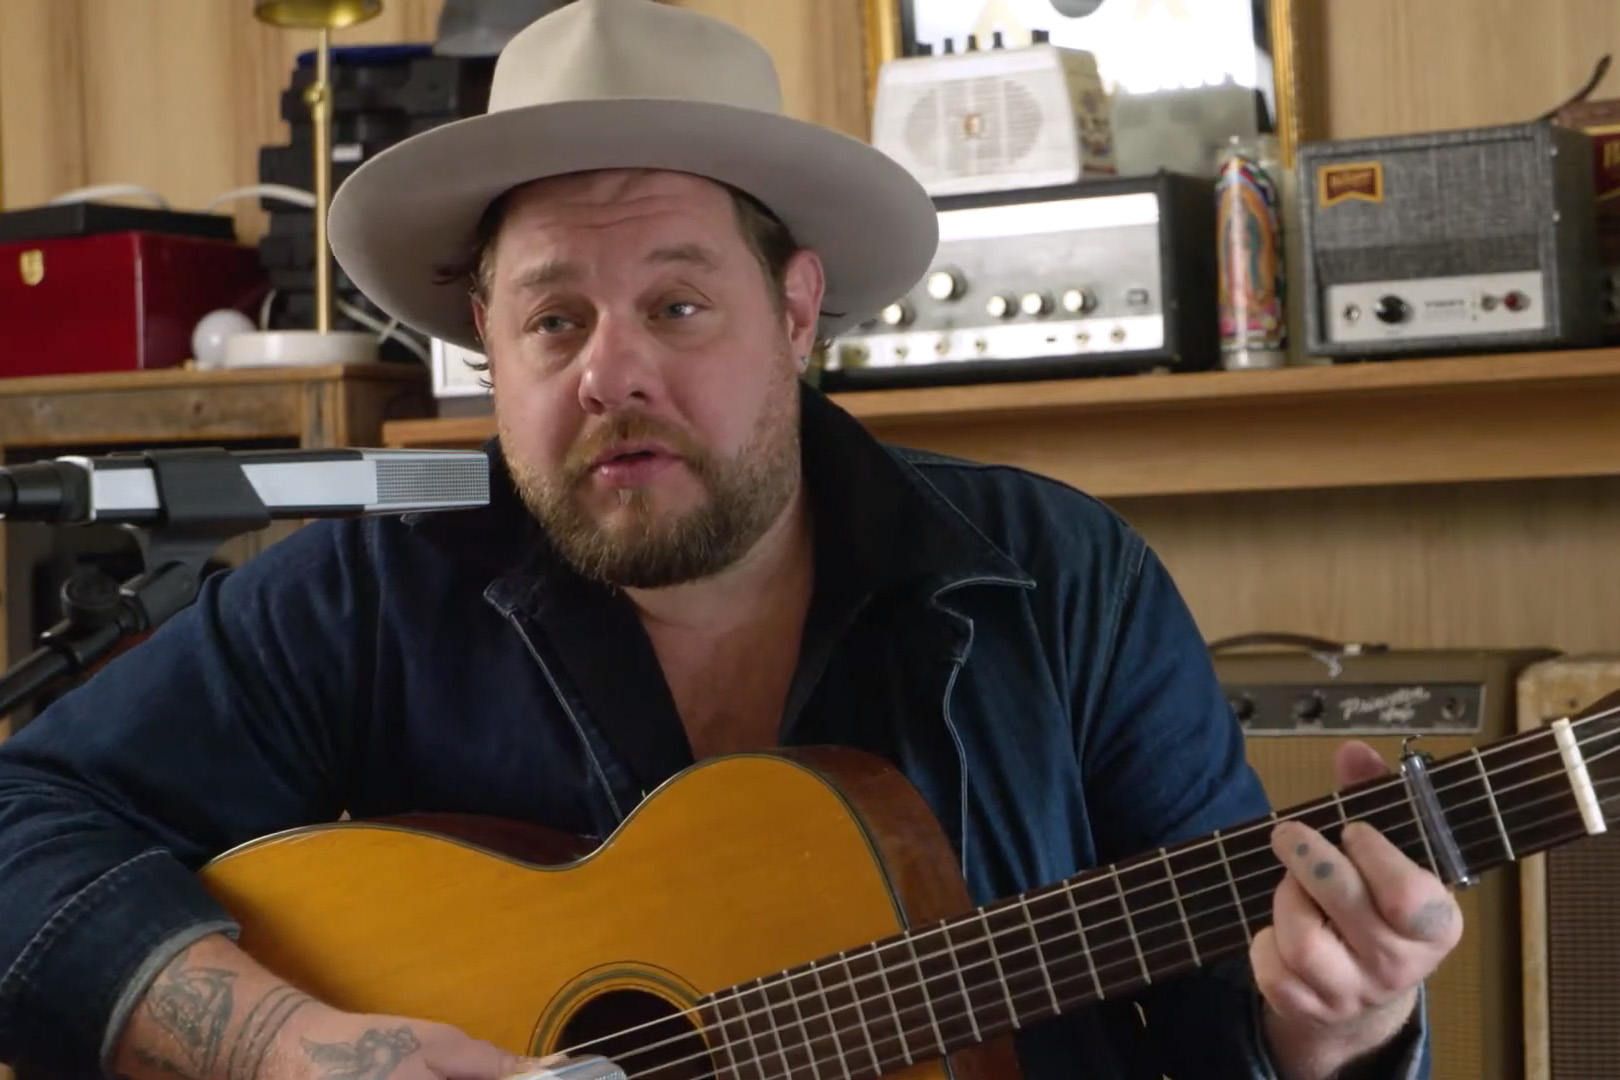 Nathaniel Rateliff performs at his home studio